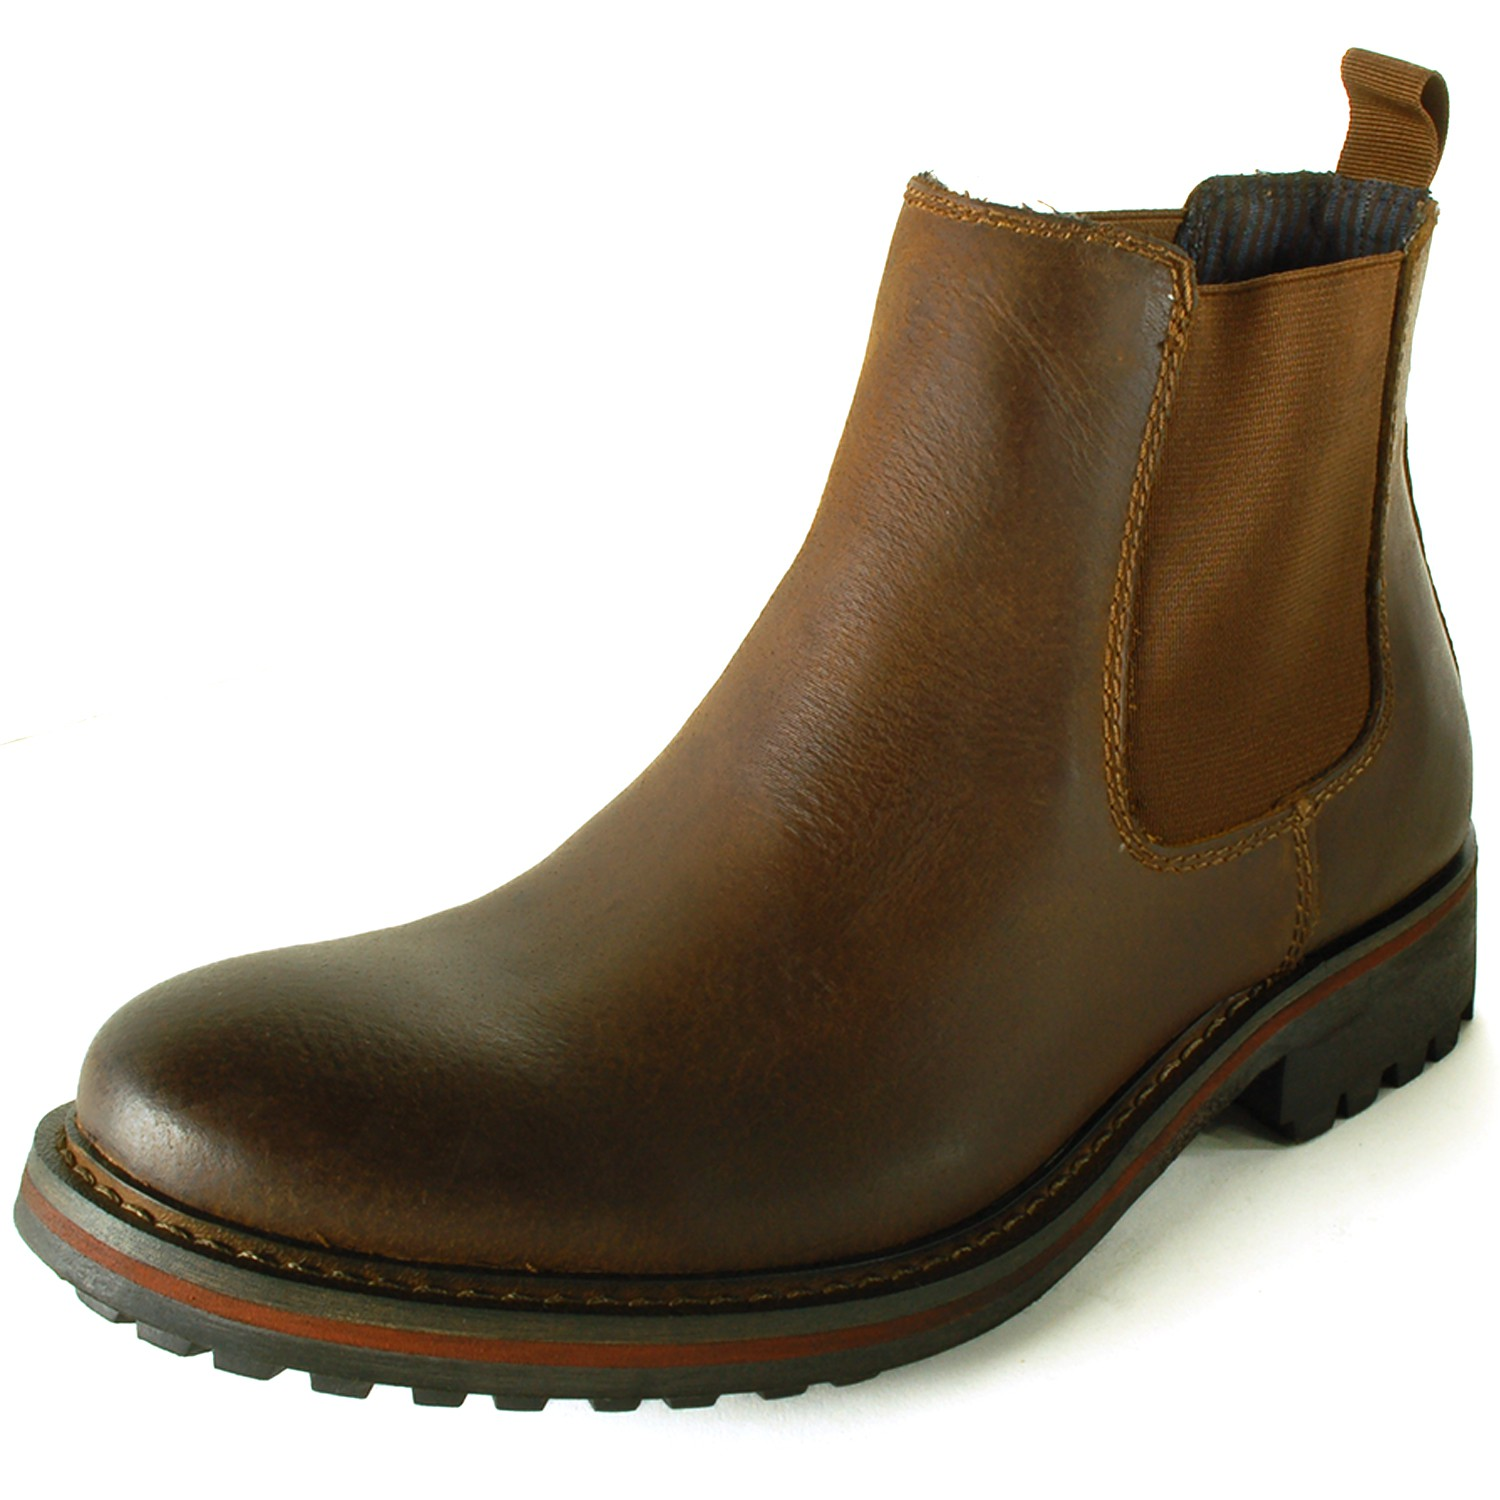 gbx mens chelsea boot leather ankle high pull